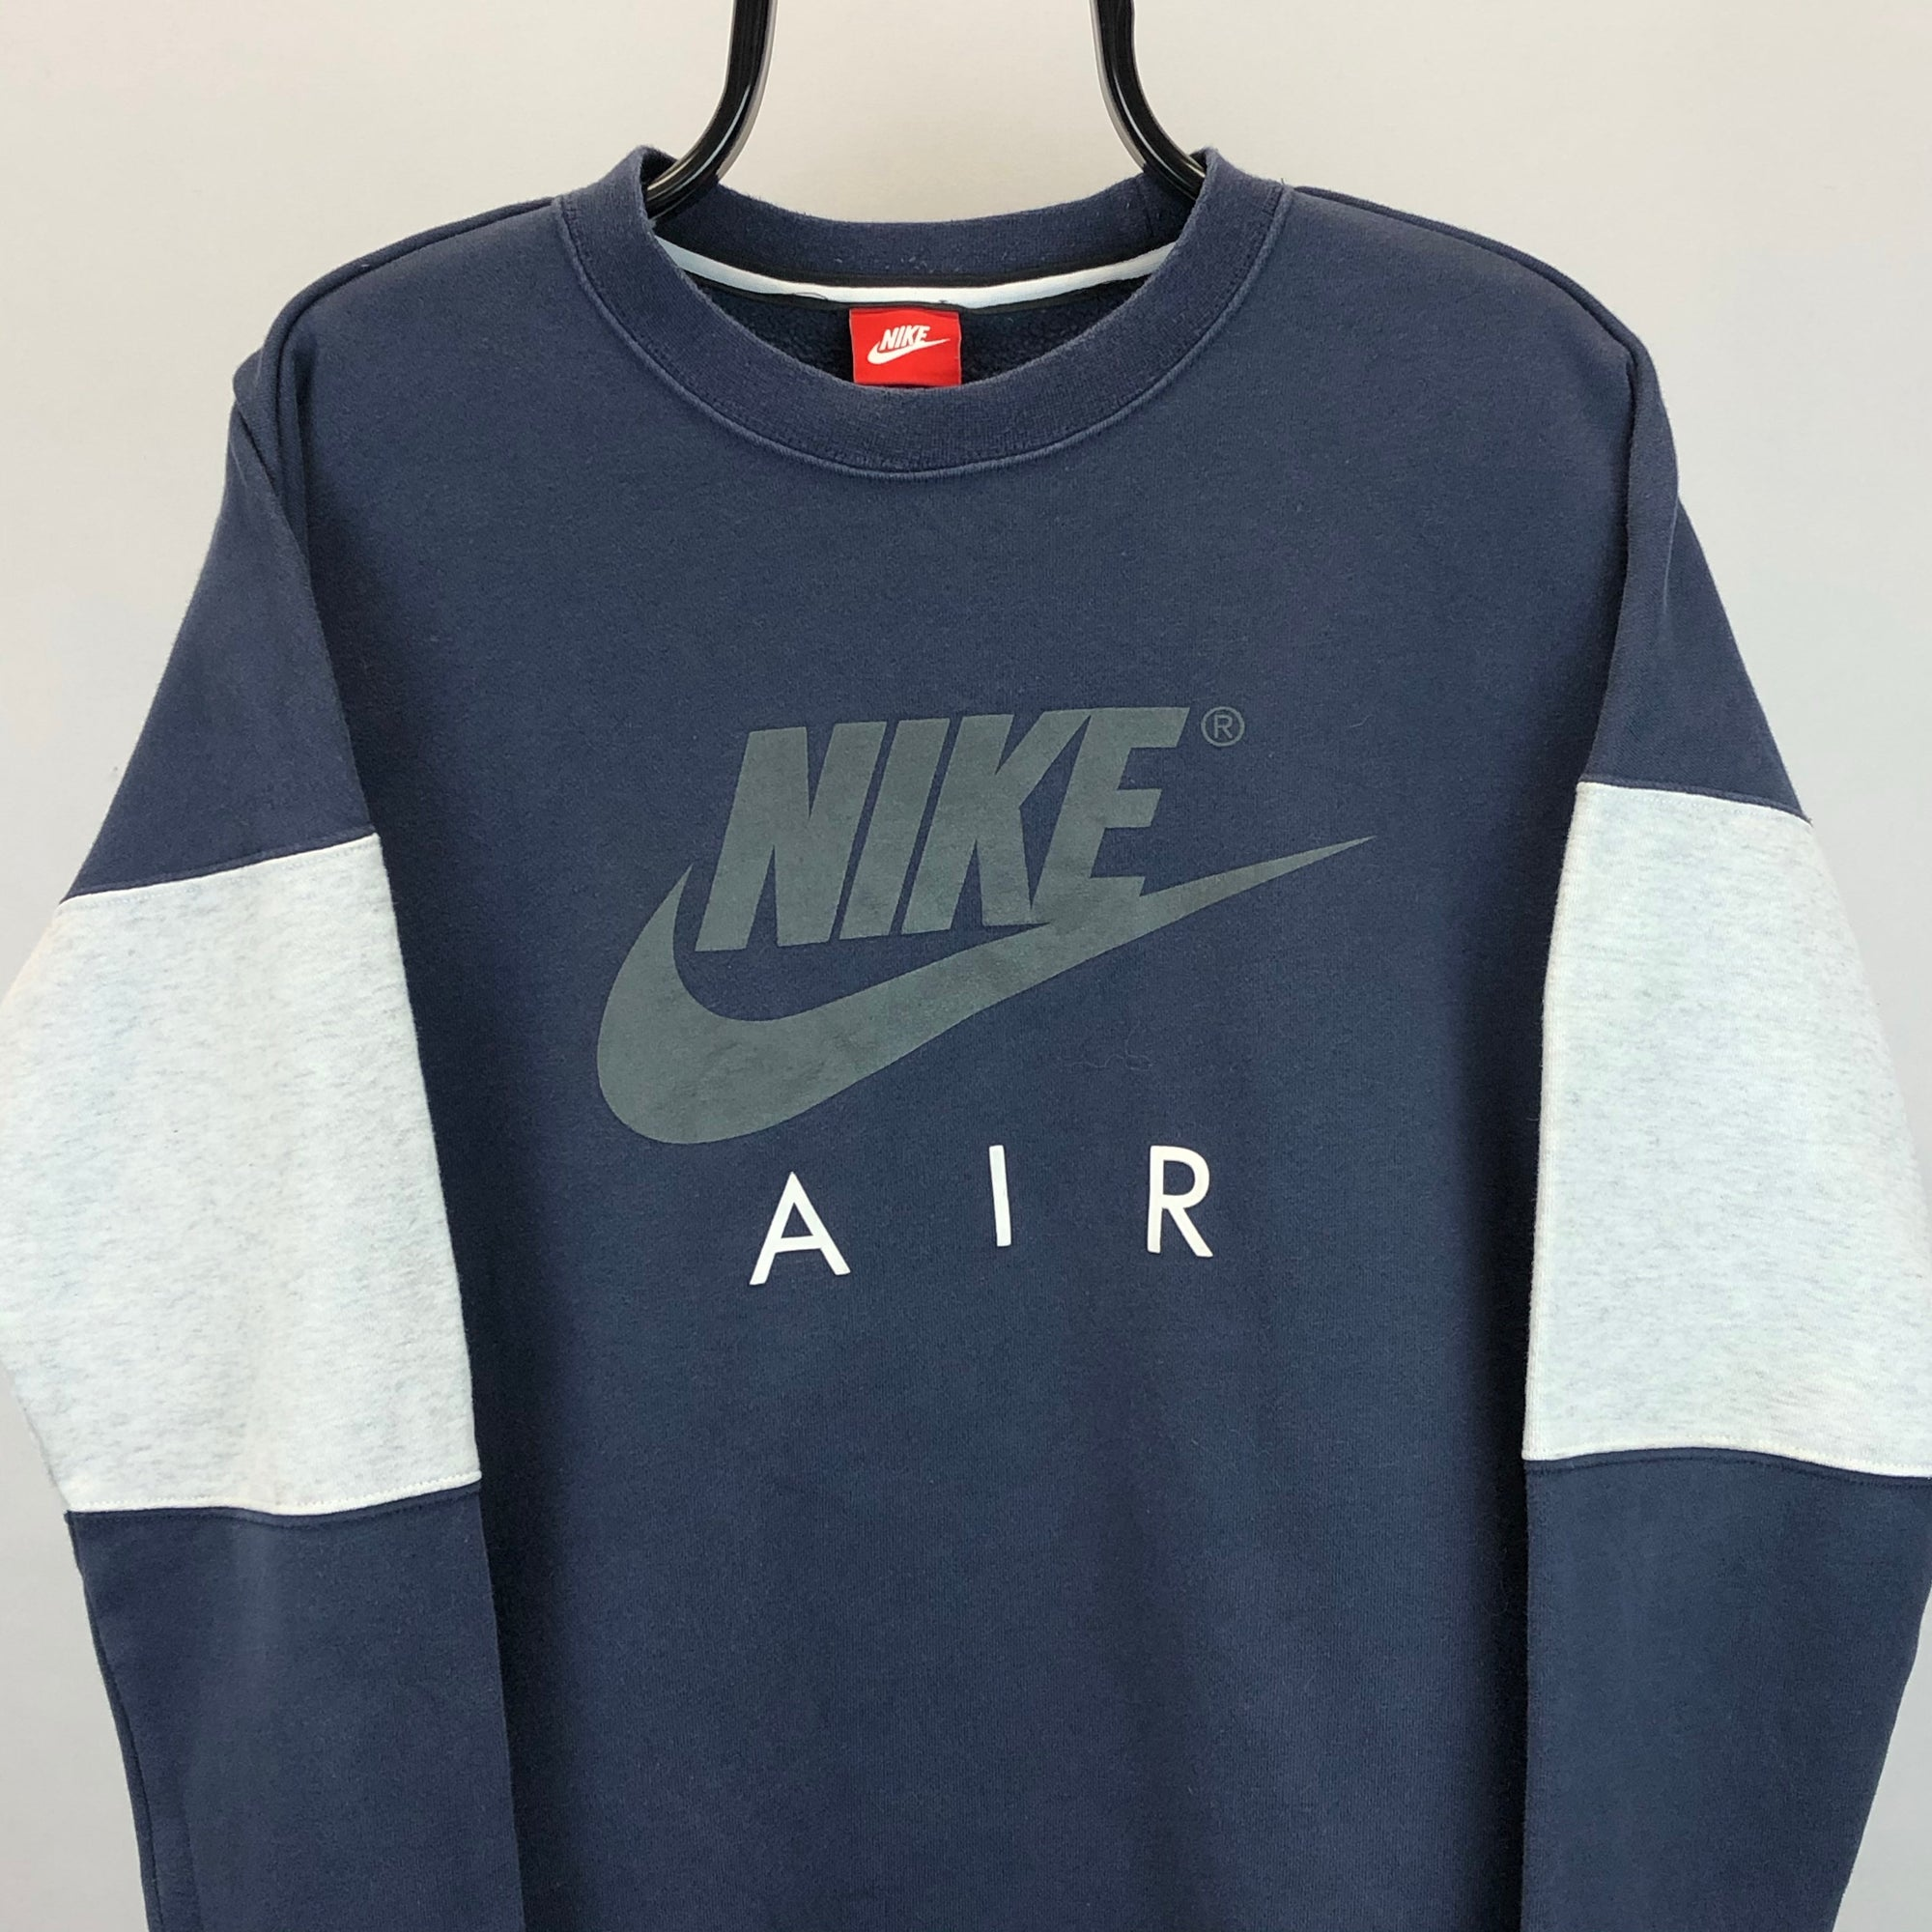 Nike Air Spellout Sweatshirt in Navy & Grey - Men's Medium/Women's Large